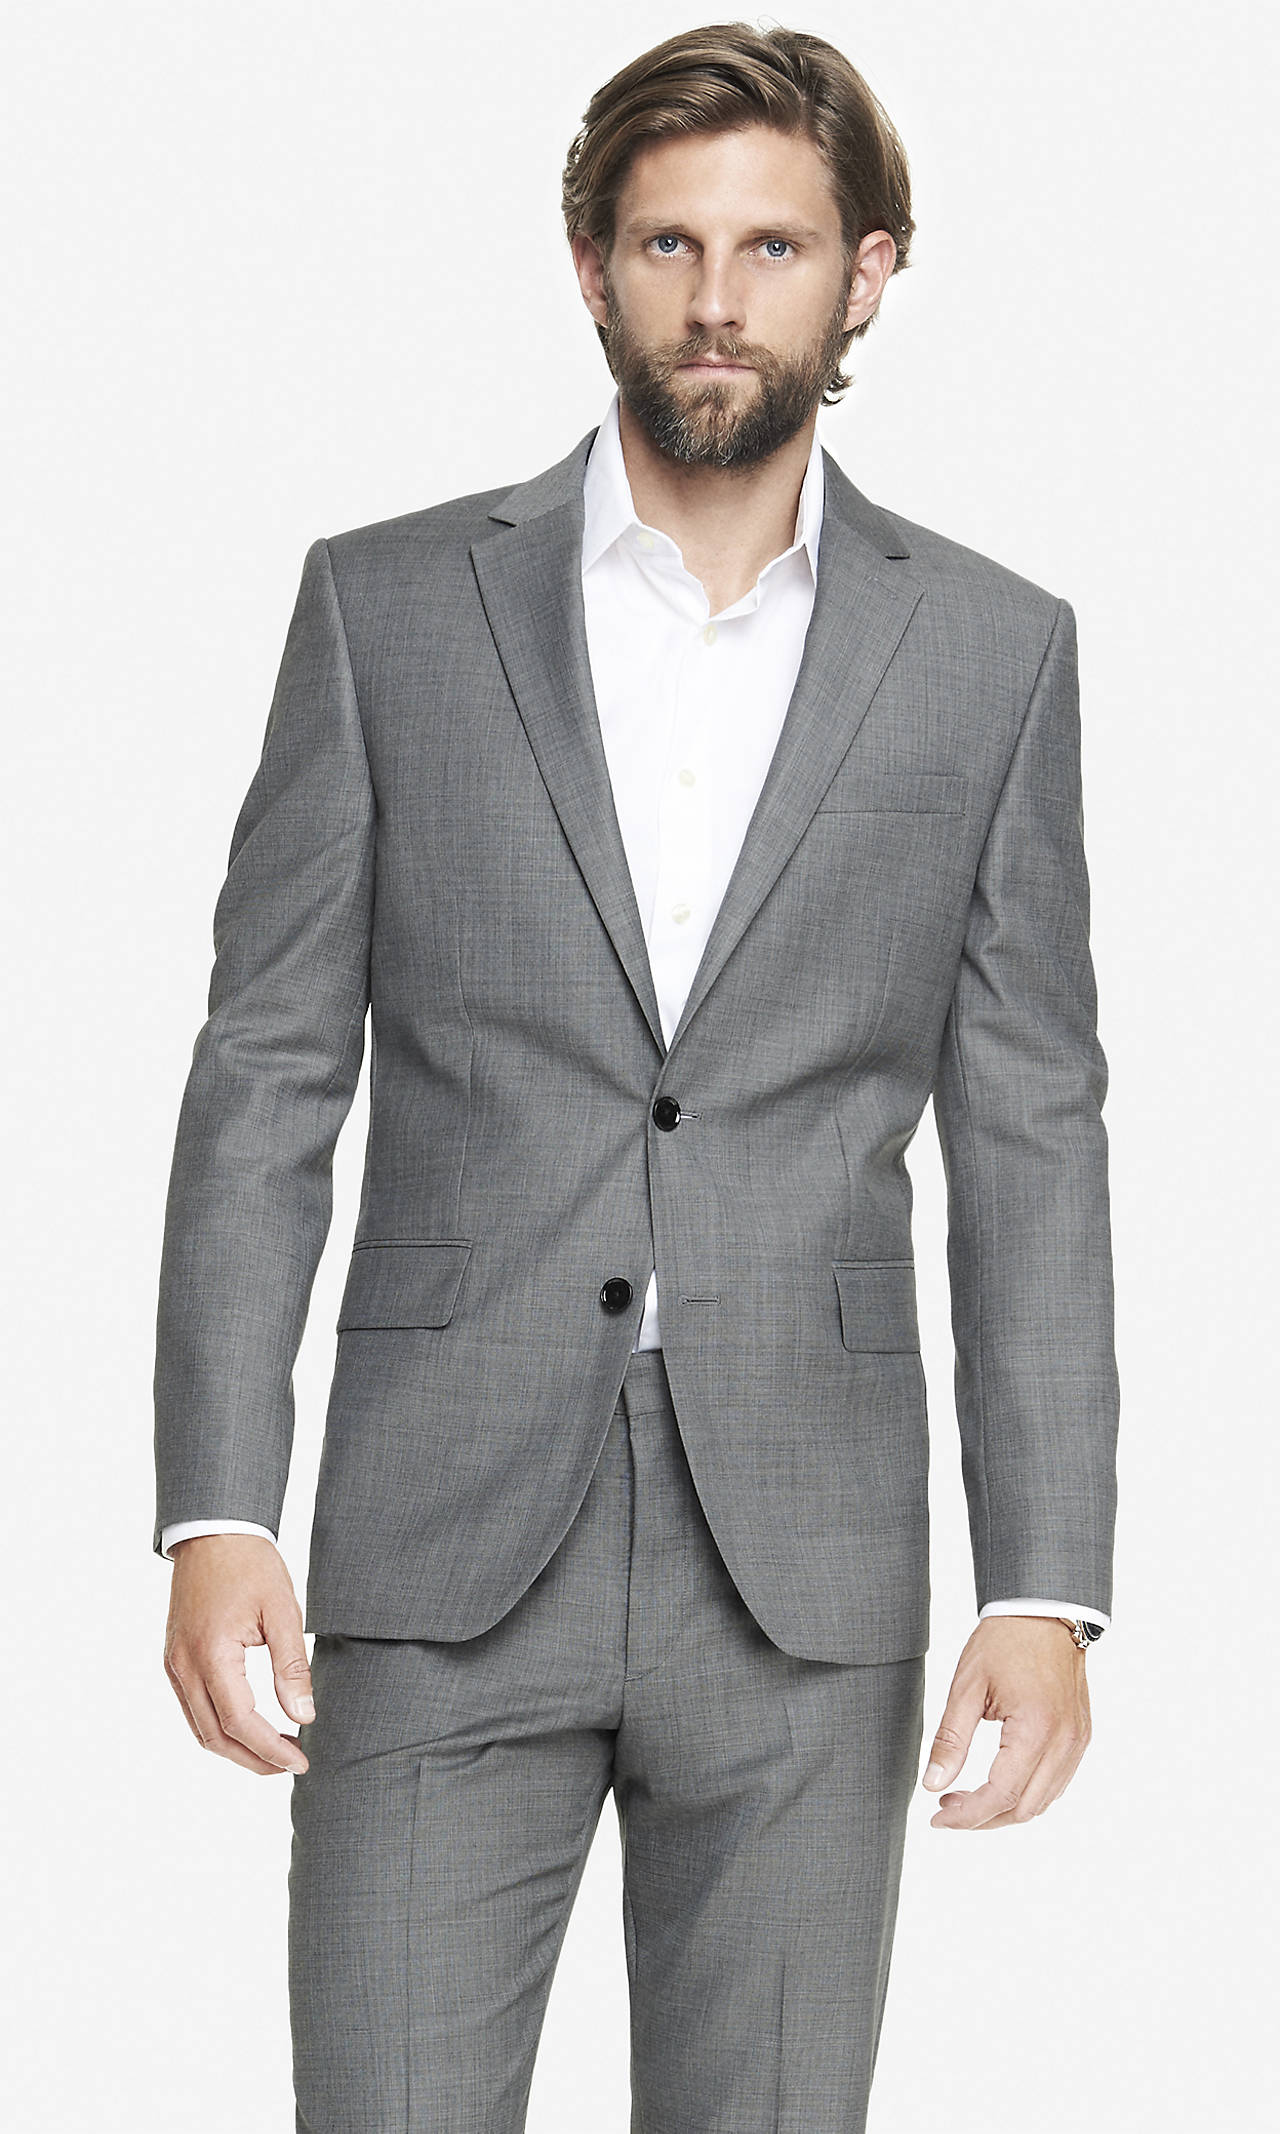 express-micro-twill-modern-suit-jacket